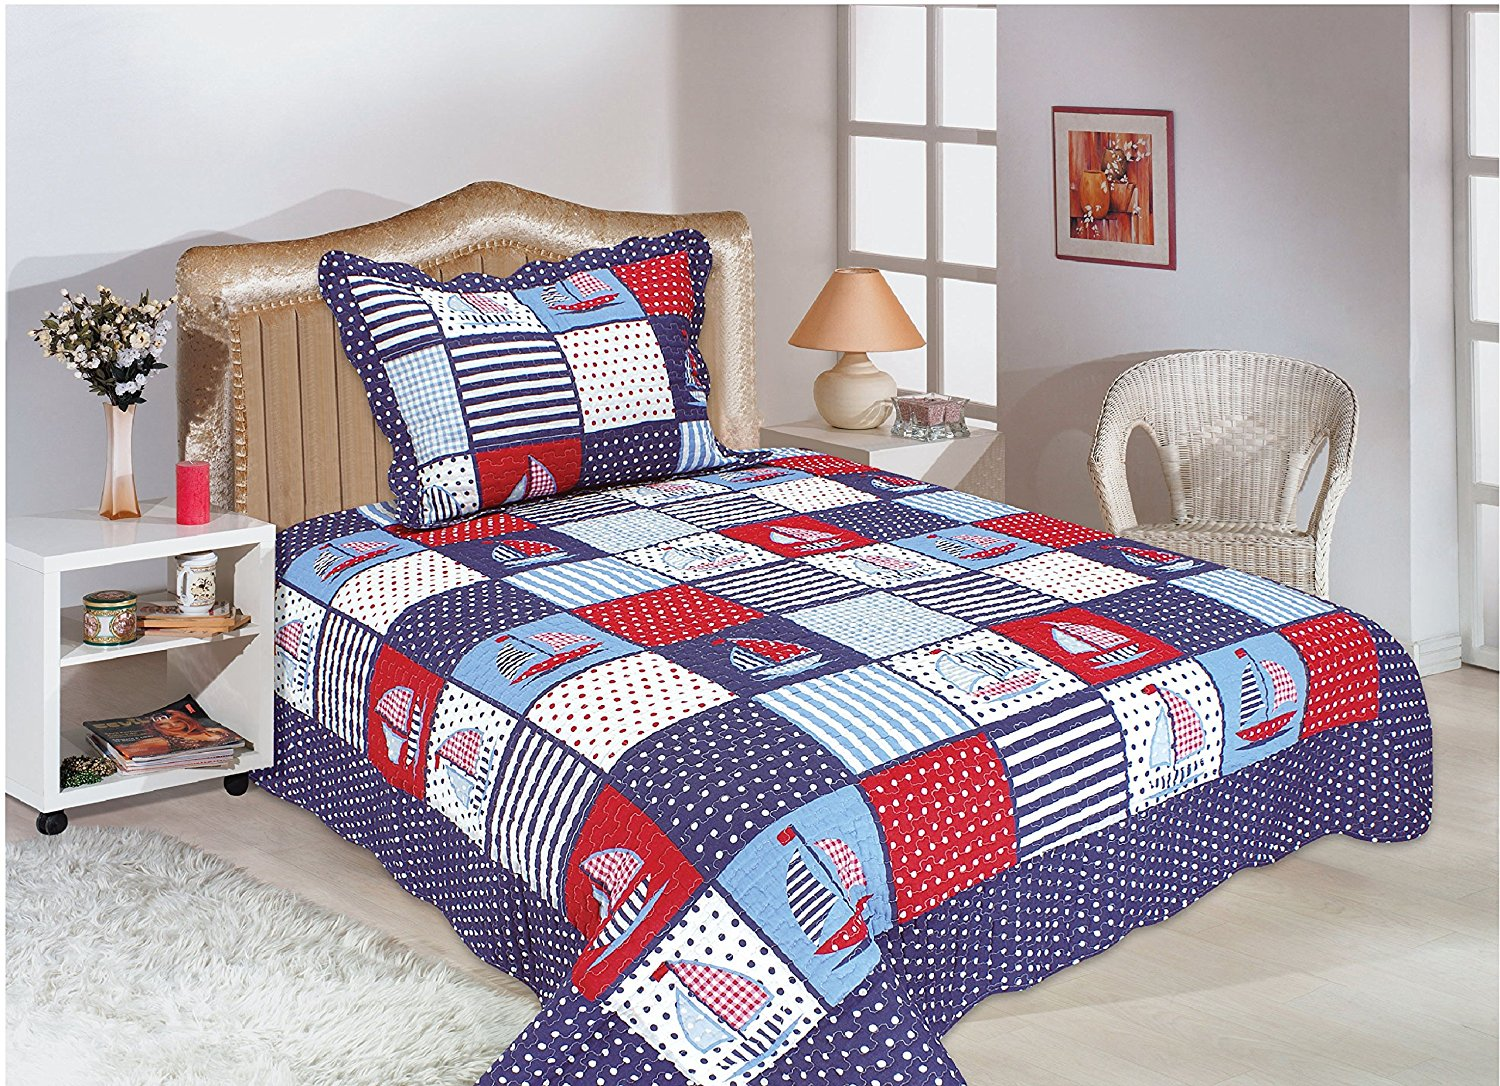 Sailboat Bedspread - r